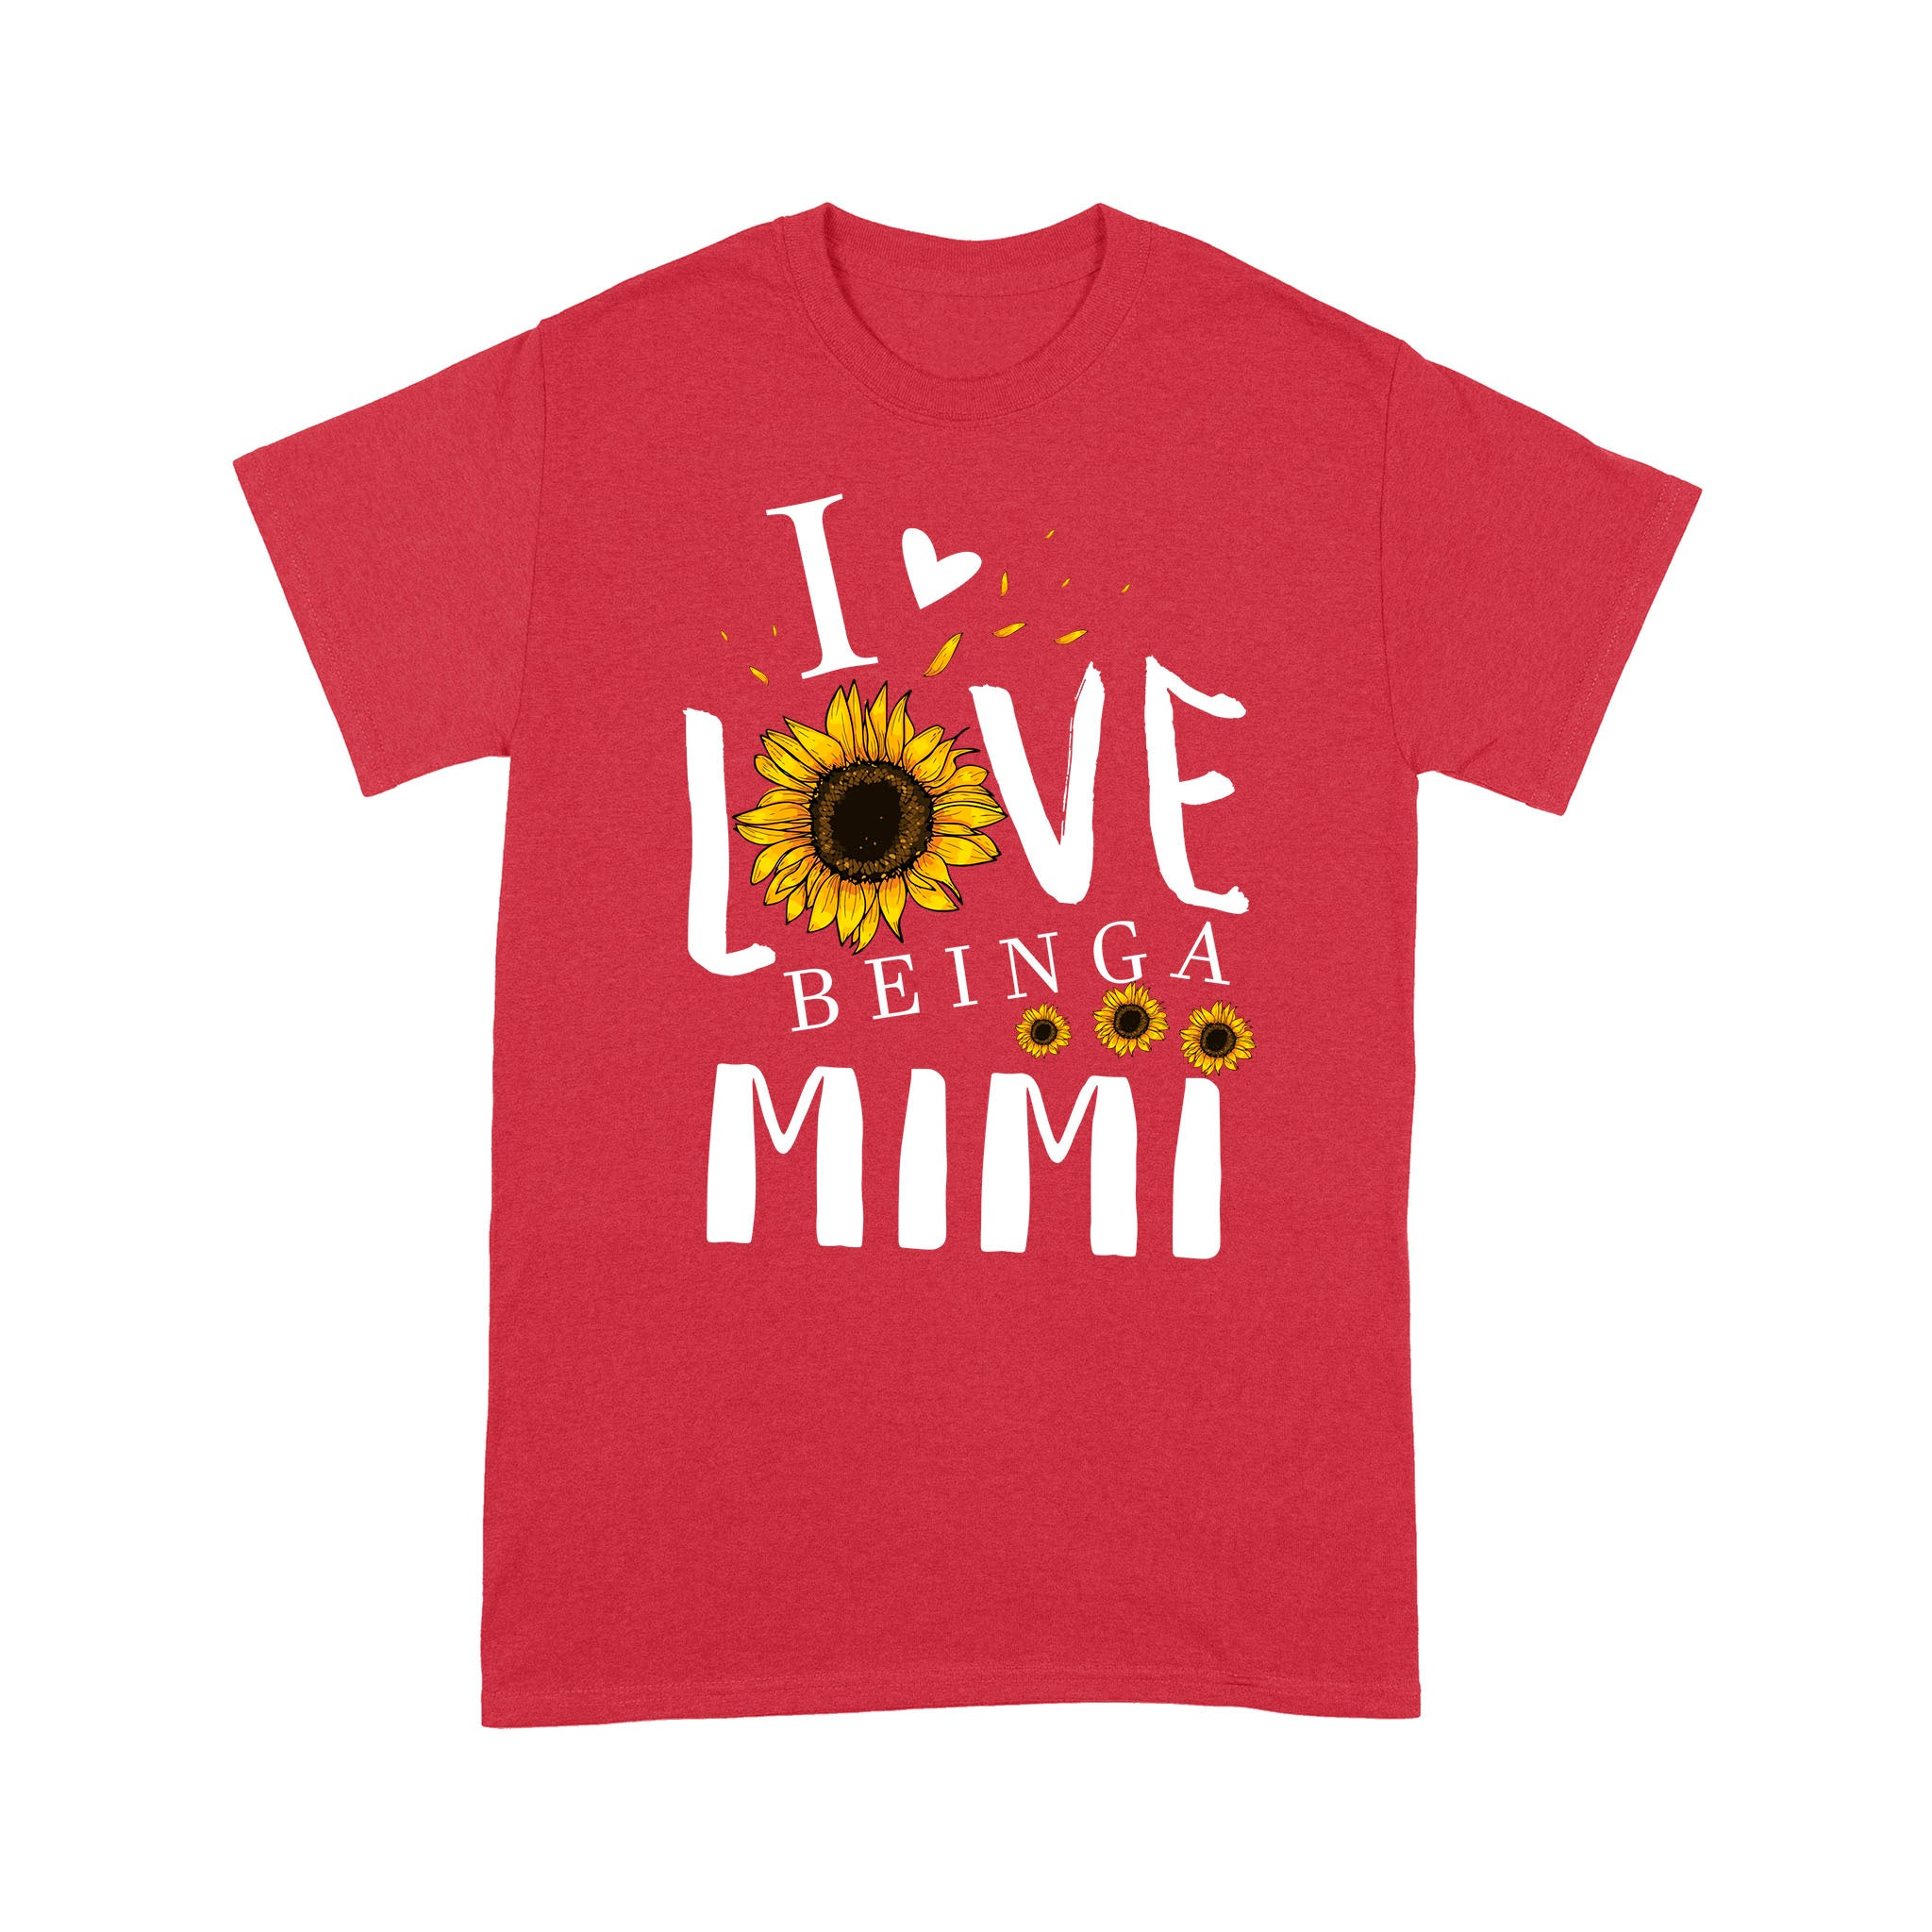 I love being a mimi T shirt  Family Tee - Standard T-shirt Tee Shirt Gift For Christmas